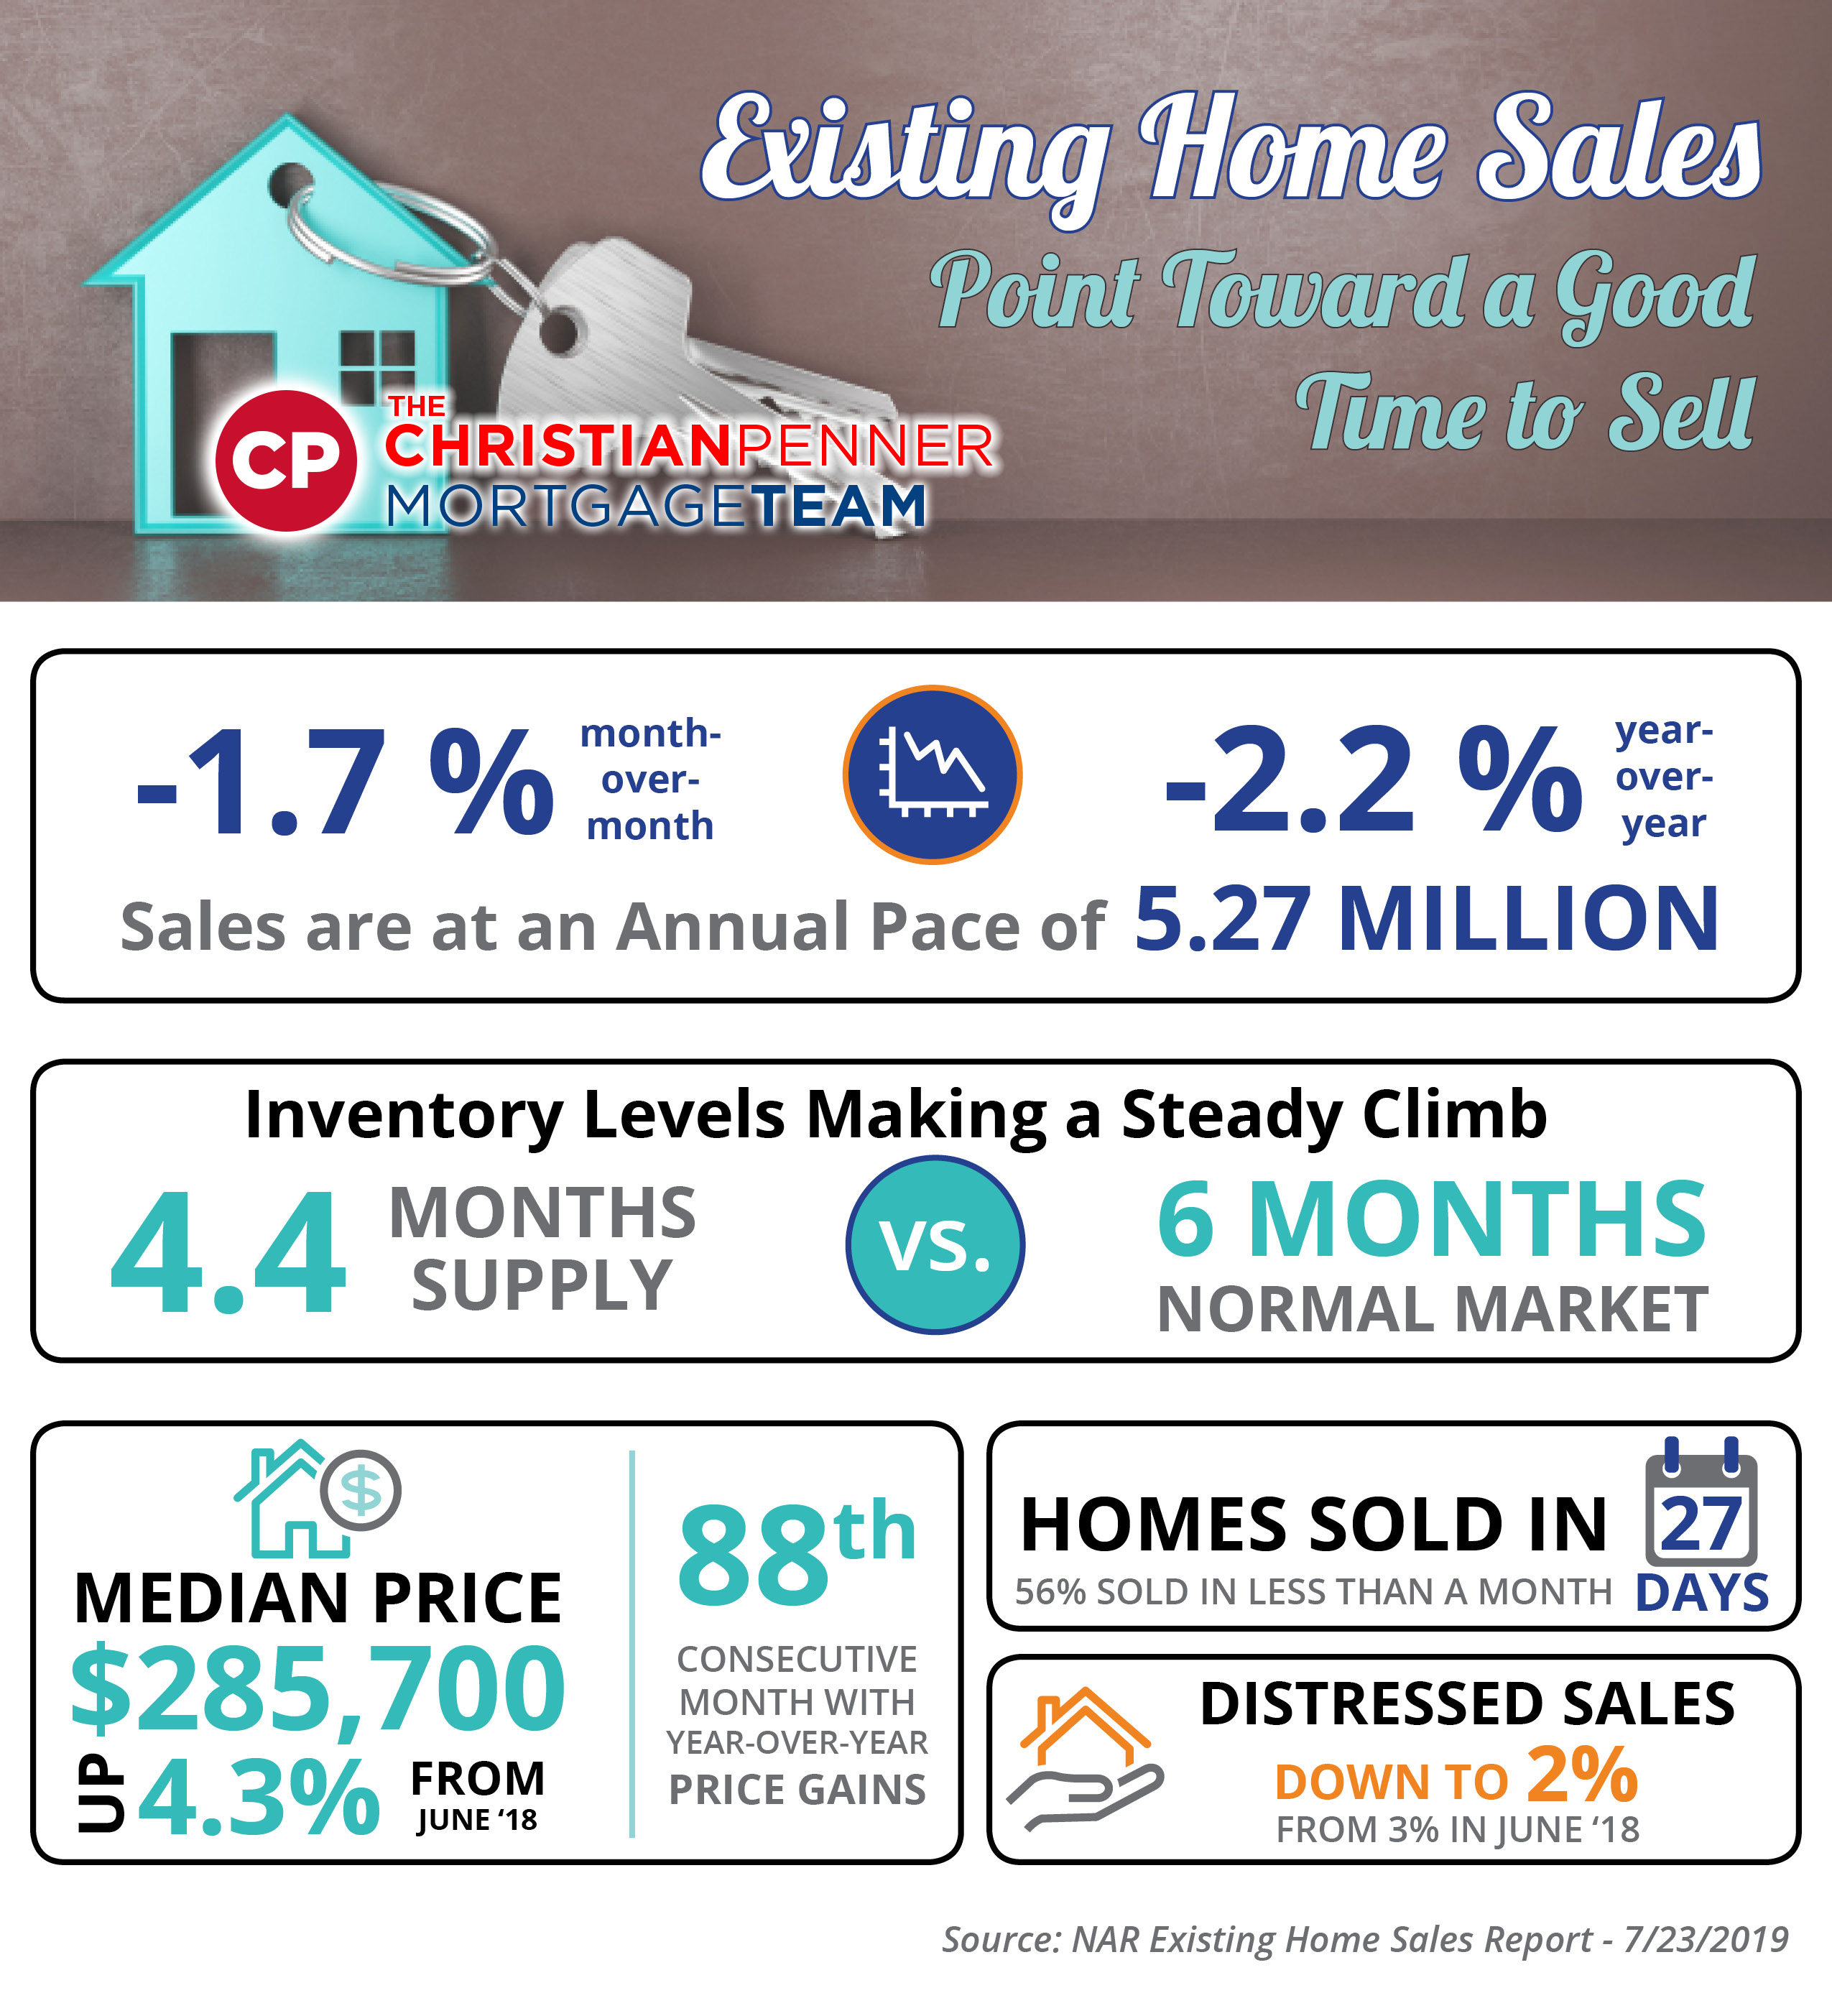 #christianpenner, #ChristianPennerMortgageTeam, #DreamHome, #FannieMaeLoans, #FHAloans, #Fix&FlipLoans, #ForSale, #FreddieMacLoans, #HouseHunting, #JumboLoans, #mortgagebroker, #MortgageLenderWestPalmBeach, #MortgageRates, #NewHome, #PrivateLoans, #RealEstate, #ReverseMortgages, #SelfEmployedLoans, #USDALoans, #VALoans, mortgage broker west palm beach, palm beach mortgage, mortgage brokers palm beach county, hard money lenders west palm beach, palm beach mortgage, mortgage brokers palm beach county, the mortgage team, palm beach mortgage group, plam mortgage, jupiter lending, mortgage companies in florida, mortgage broker west palm beach, palm beach mortgage, mortgage brokers palm beach county, hard money lenders west palm beach, west palm beach mortgage company, mortgage rates, simple mortgage calculator, mortgage amortization calculator, mortgage calculator with pmi, mortgage calculator zillow, mortgage calculator texas, mortgage cost calculator, mortgage simple definition, va mortgage calculator, va mortgage rates, va home loan requirements, va loan benefits, va home loan benefits, va loans bad credit, va home loan certificate of eligibility, va personal loan, usda rural development, usda mortgage calculator, usda direct loan, usda mortgage rates, usda loan credit requirements, usda lenders, usda loan income limits, usda direct loan income limits, usda loan calculator, usda loan rates, usda direct loan, usda mortgage rates, usda home loan calculator, what does usda do, usda loan income requirements, usda loan eligibility map, usda loan rates 2018, usda lenders, usda loan income limits, usda business loans, usda loan home condition requirements, usda home loan map, usda credit score waiver, what does aphis stand for, quicken loans 1 down payment, fha mortgage lenders near me, usda loan requirements pa, what does fsis stand for, usda organic full form, top usda lenders, does quicken loans do 203k, where to apply for a usda home loan, mortgage calculator, what is a 